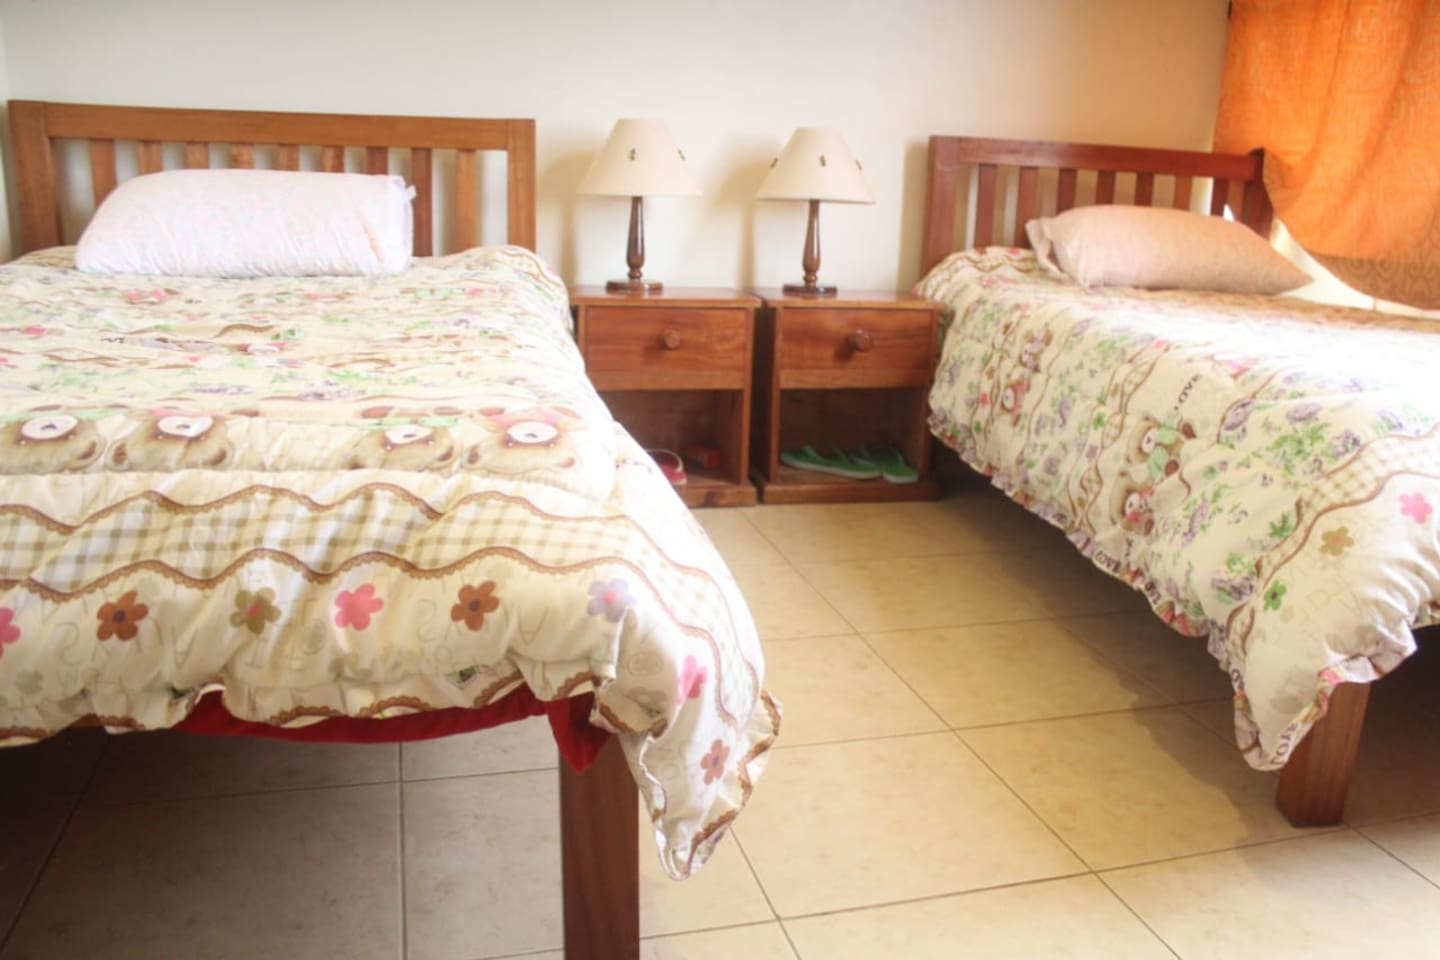 Double bed. Attached to it is a tv/sitting room, kitchen and a bathroom with hot shower.